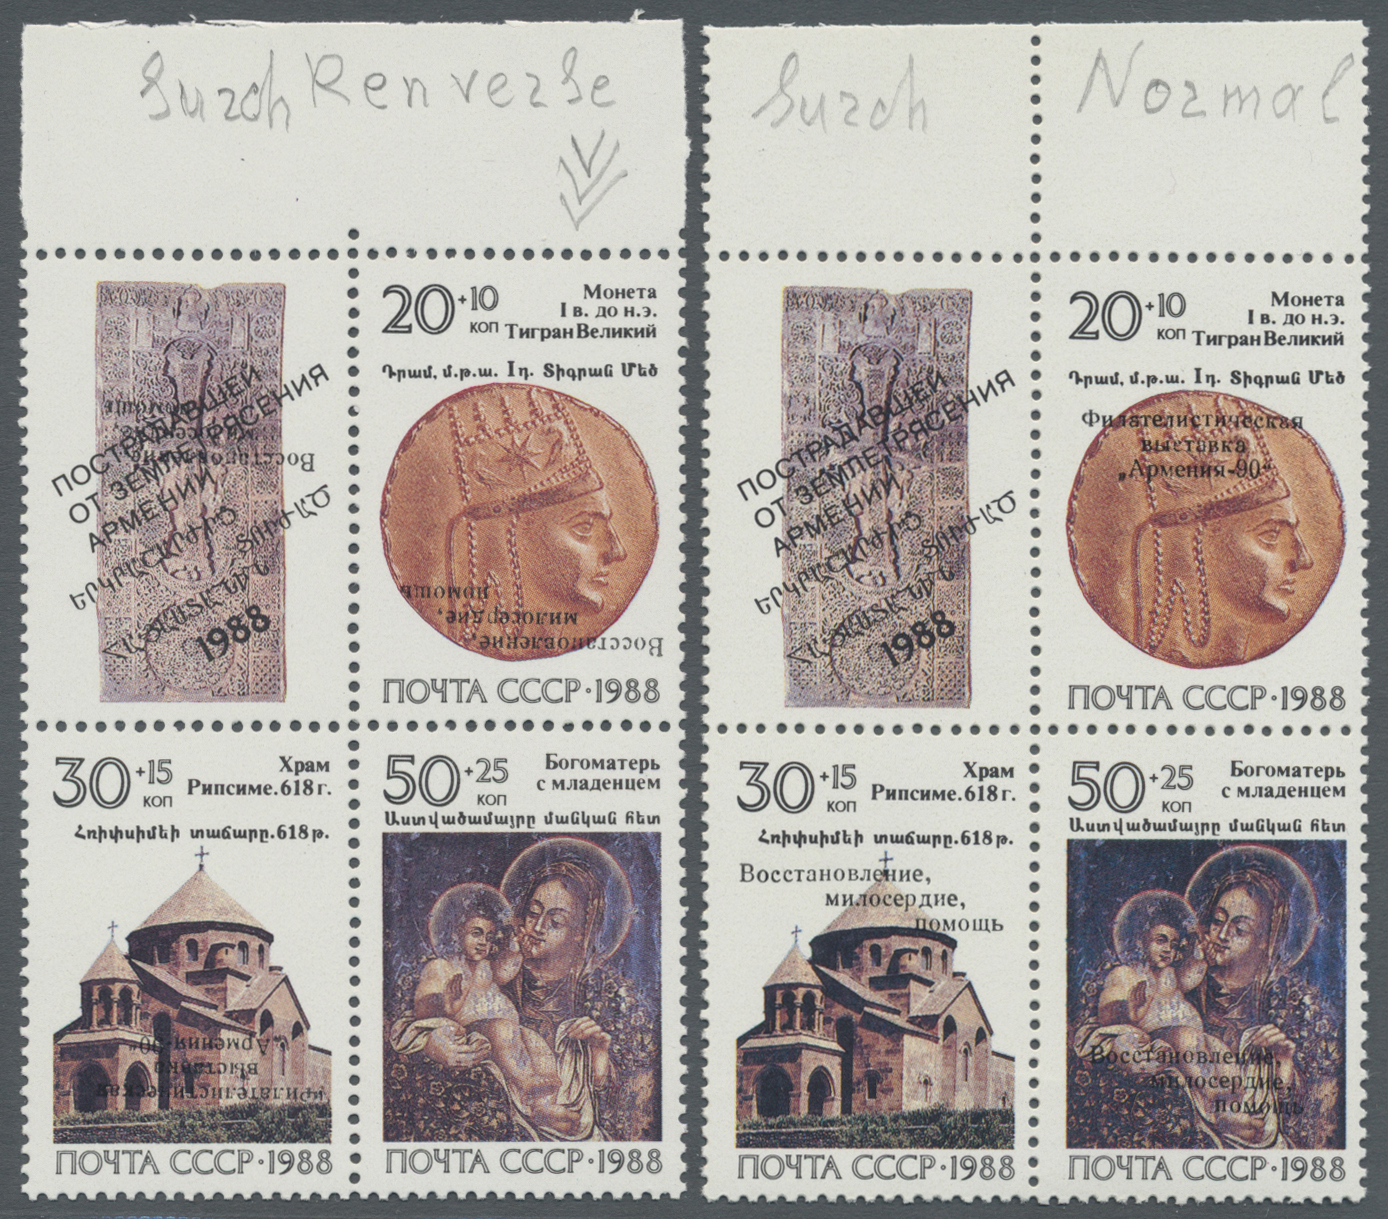 Lot 19102 - sowjetunion  -  Auktionshaus Christoph Gärtner GmbH & Co. KG Single lots Philately Overseas & Europe. Auction #39 Day 4